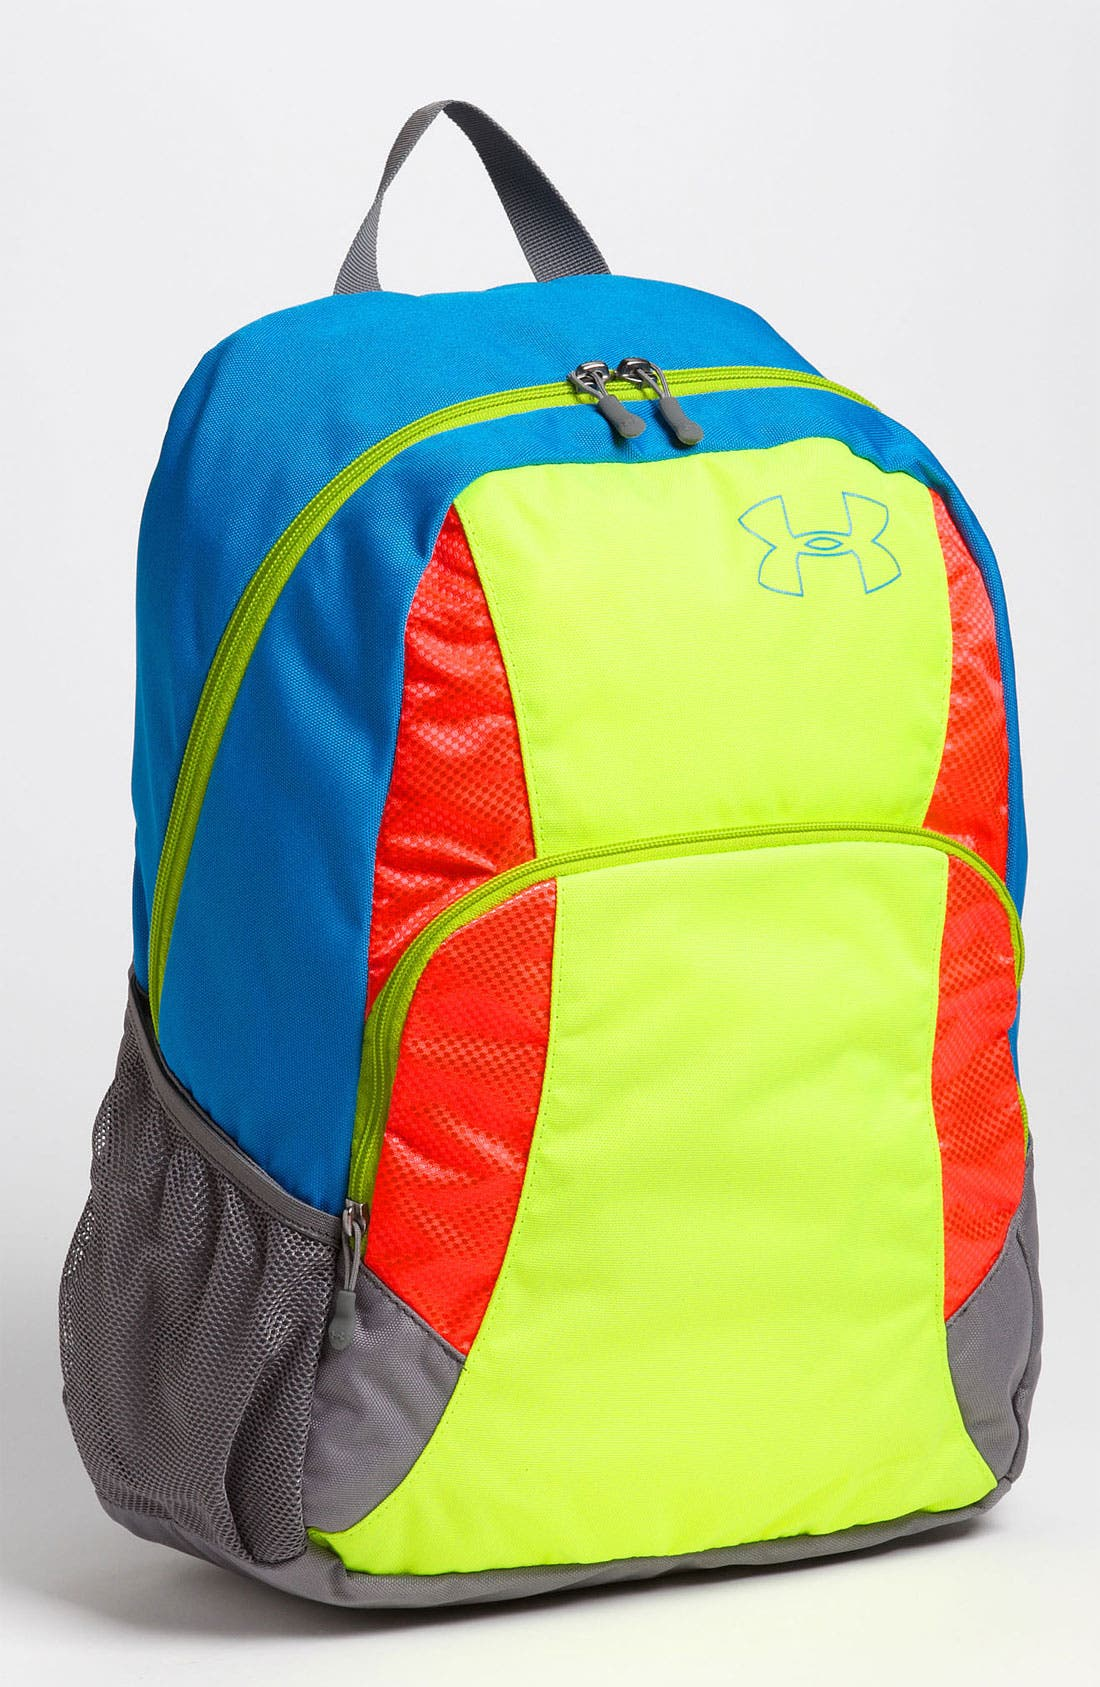 Main Image - Under Armour 'Rambler' Backpack (Kids)